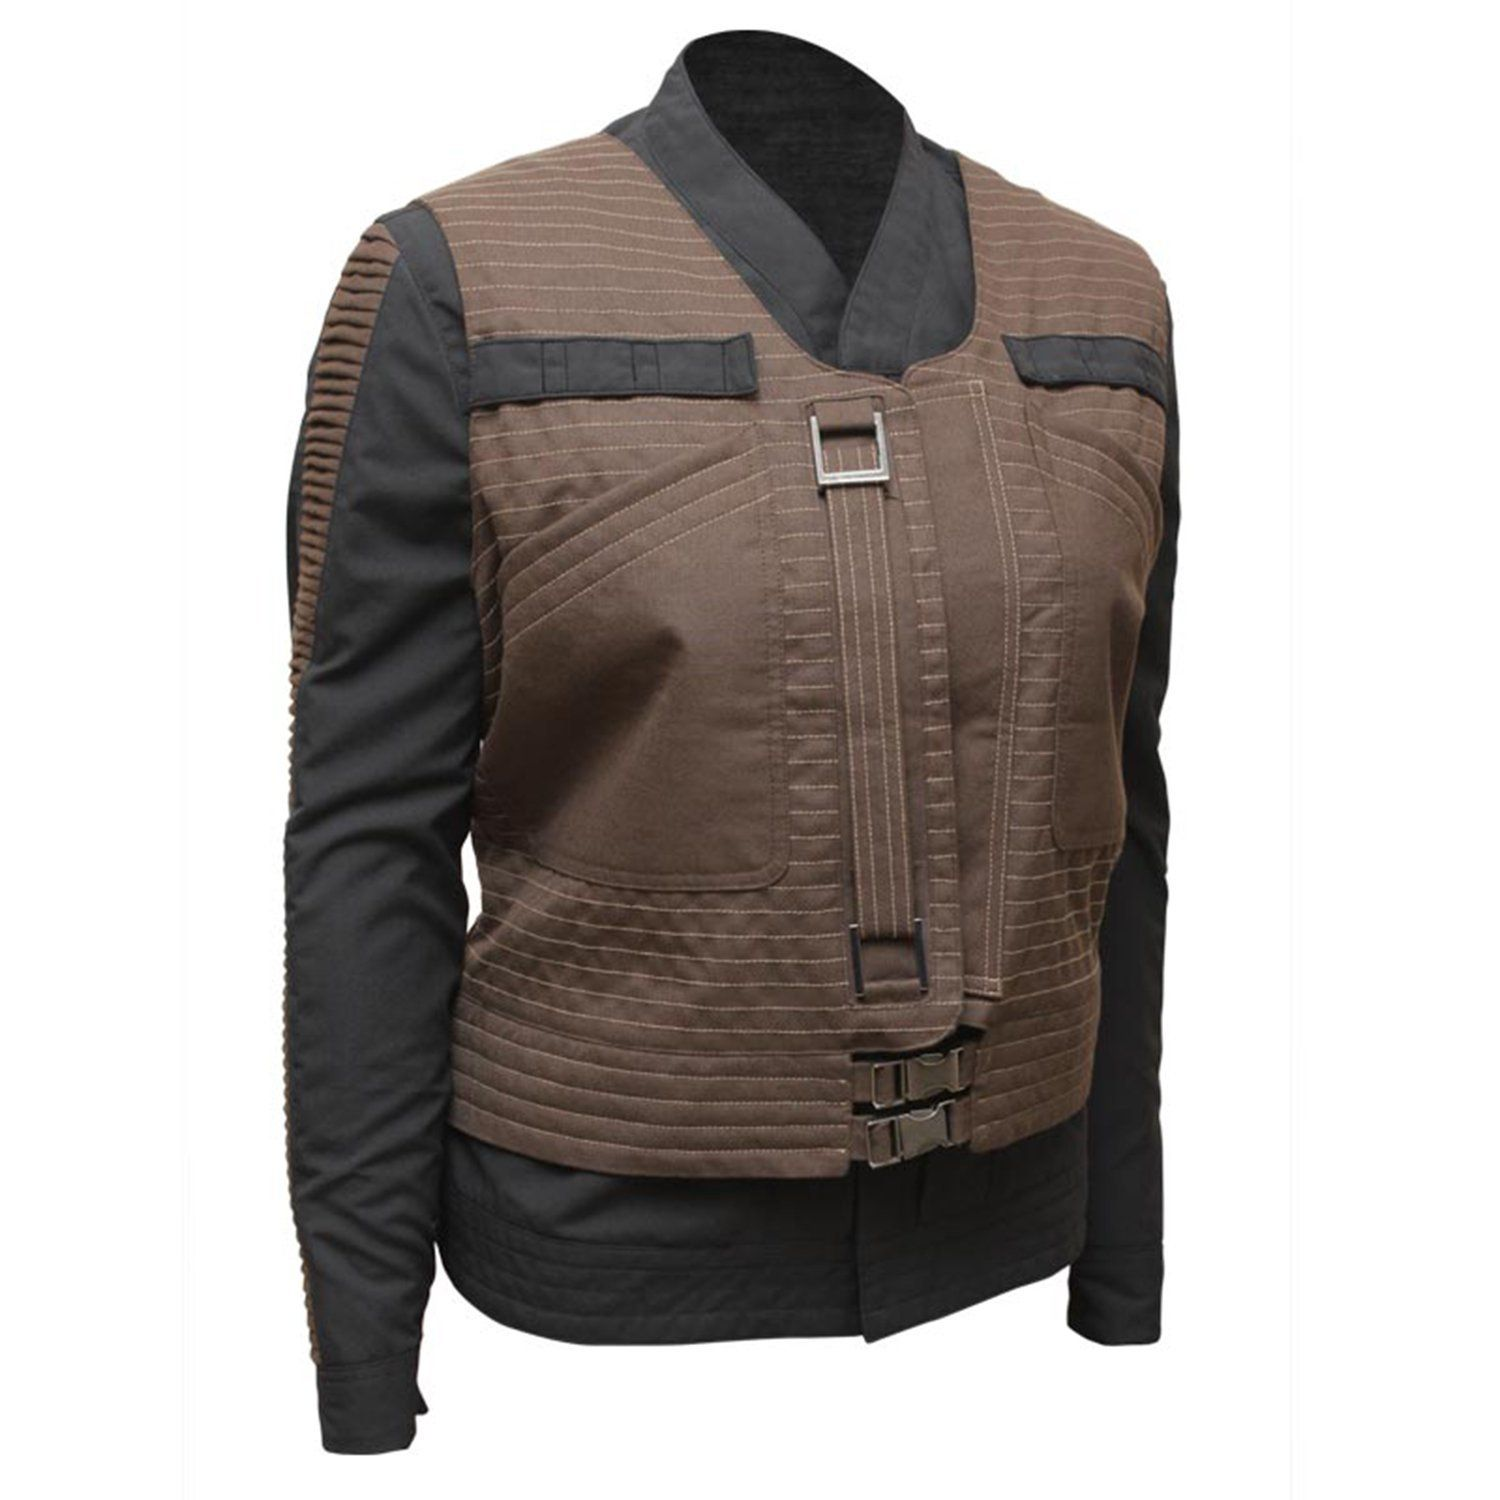 Prepare The Coolest Star Wars Jacket Before Going To The Party Leather Jackets Women Star Wars Jacket Lambskin Leather Jacket [ 1500 x 1500 Pixel ]